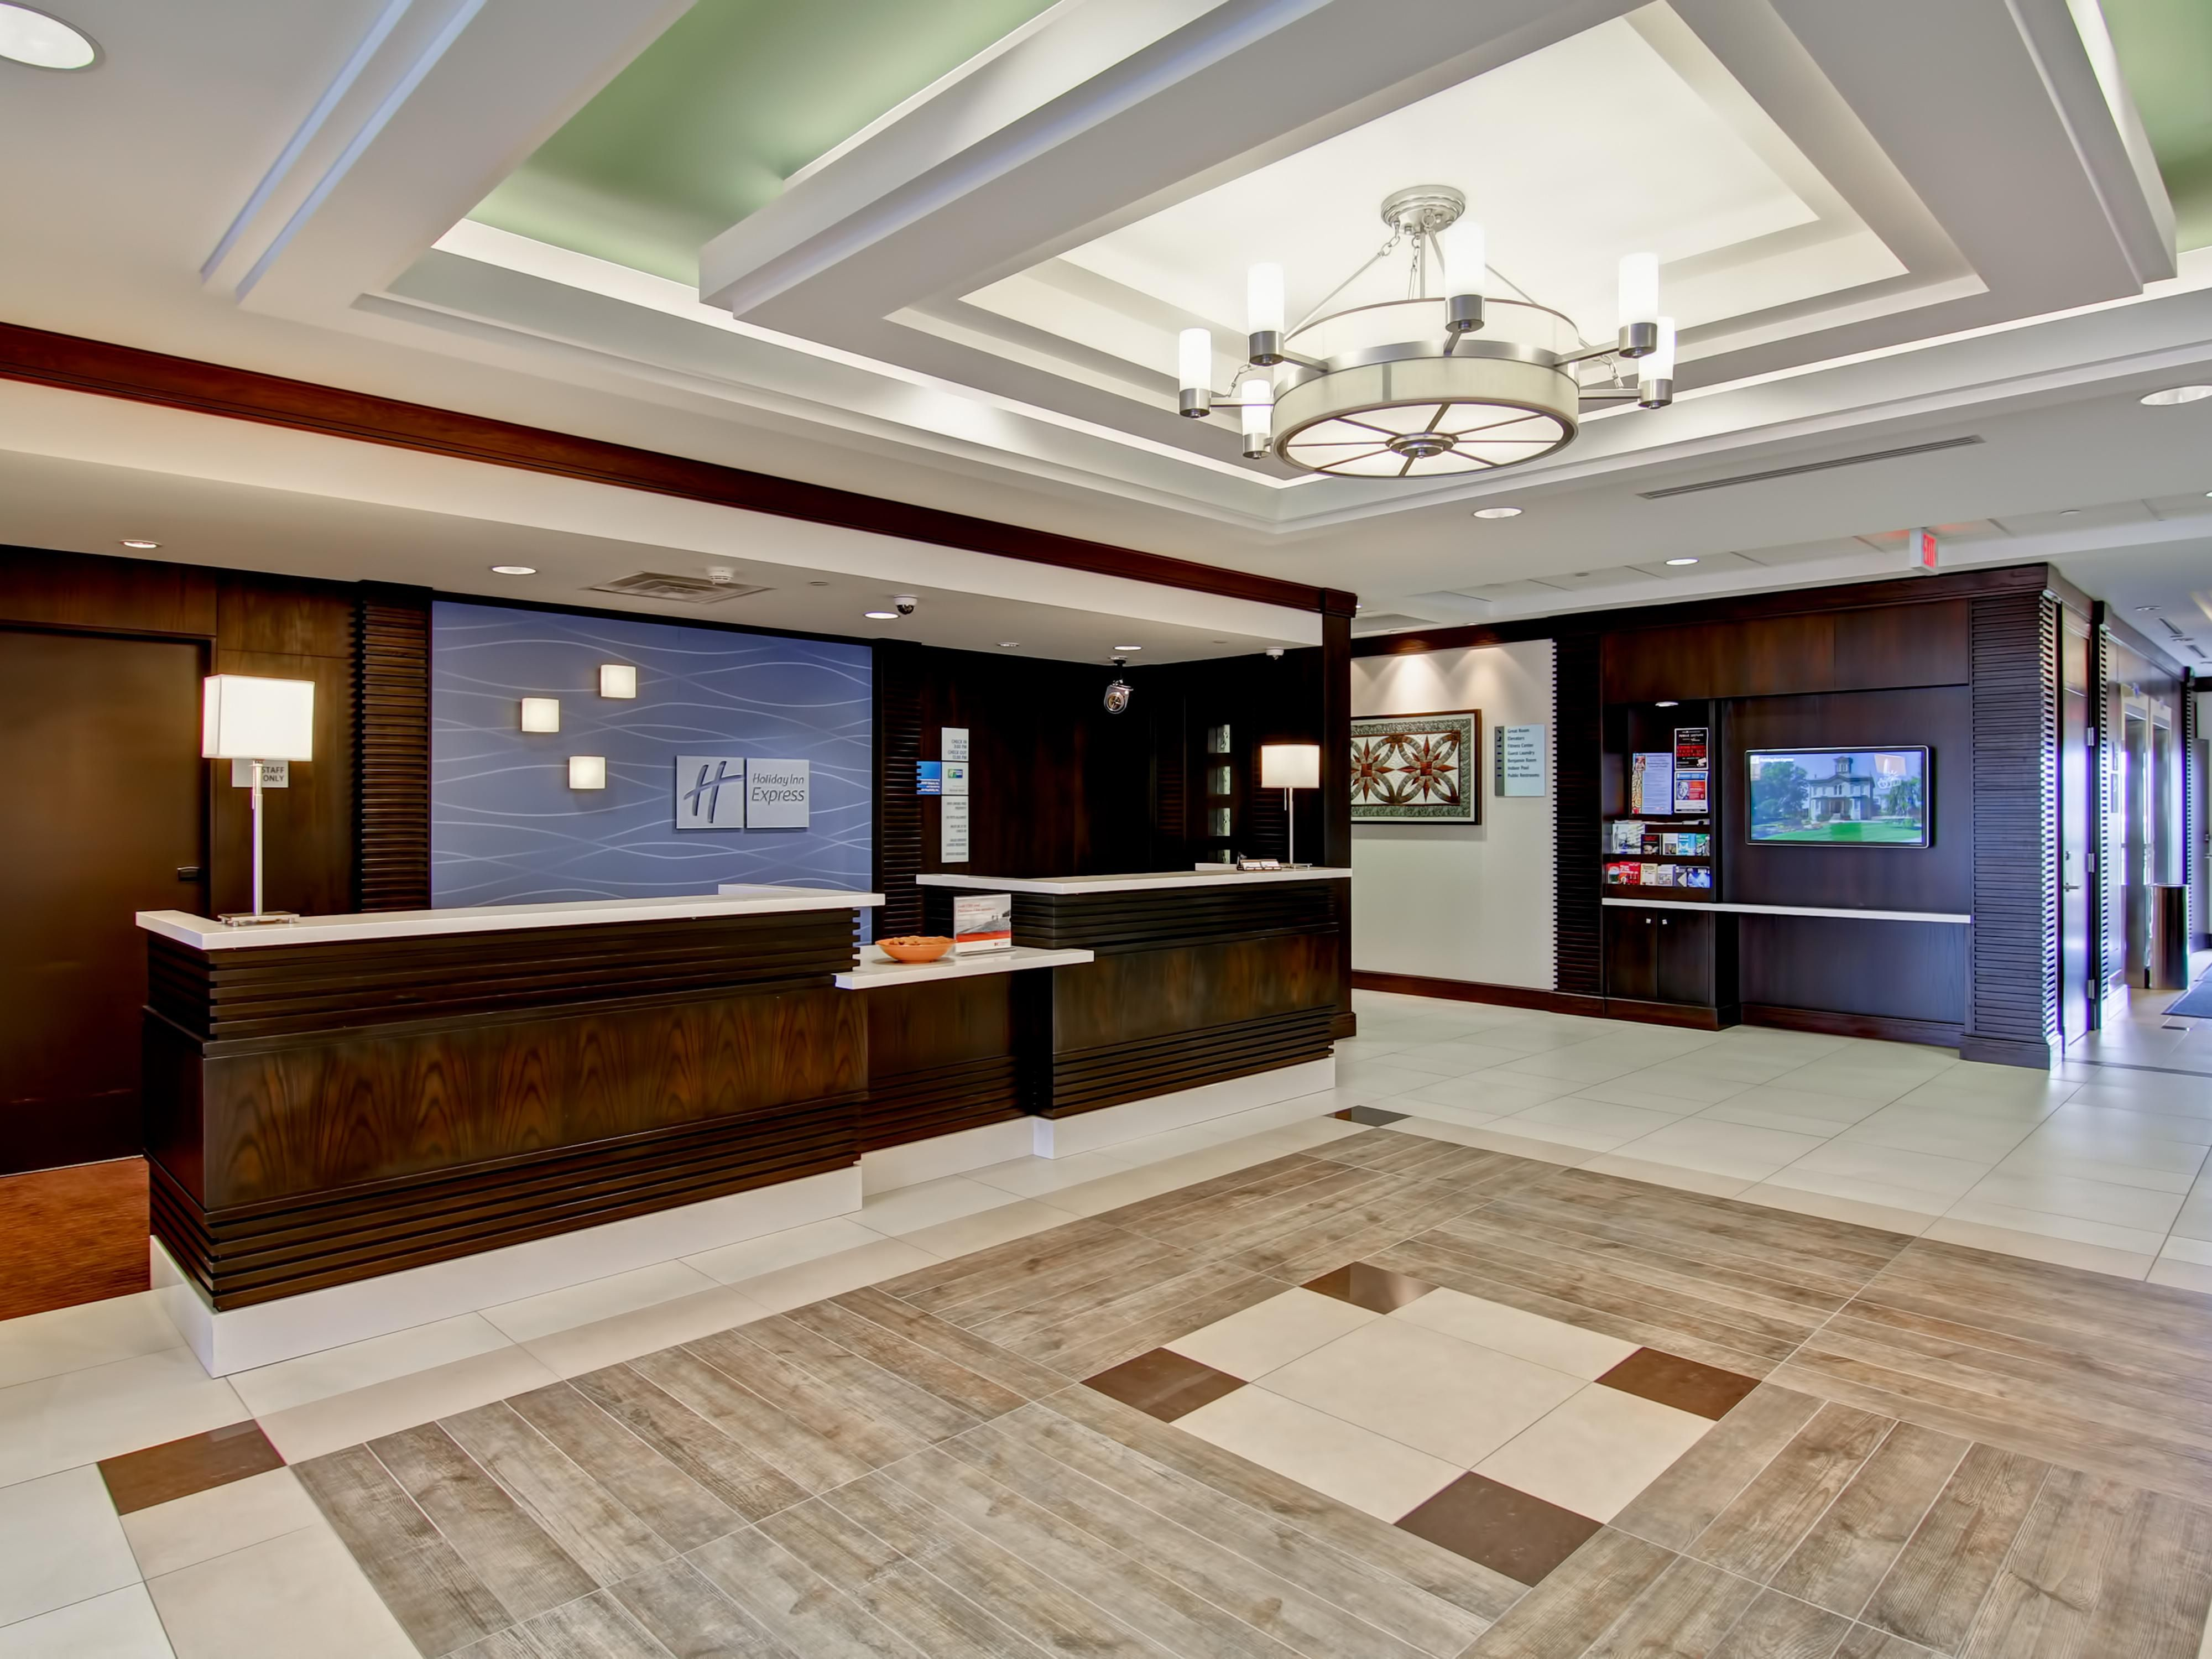 Our Award Winning Lobby won the IHG New Development Design Award